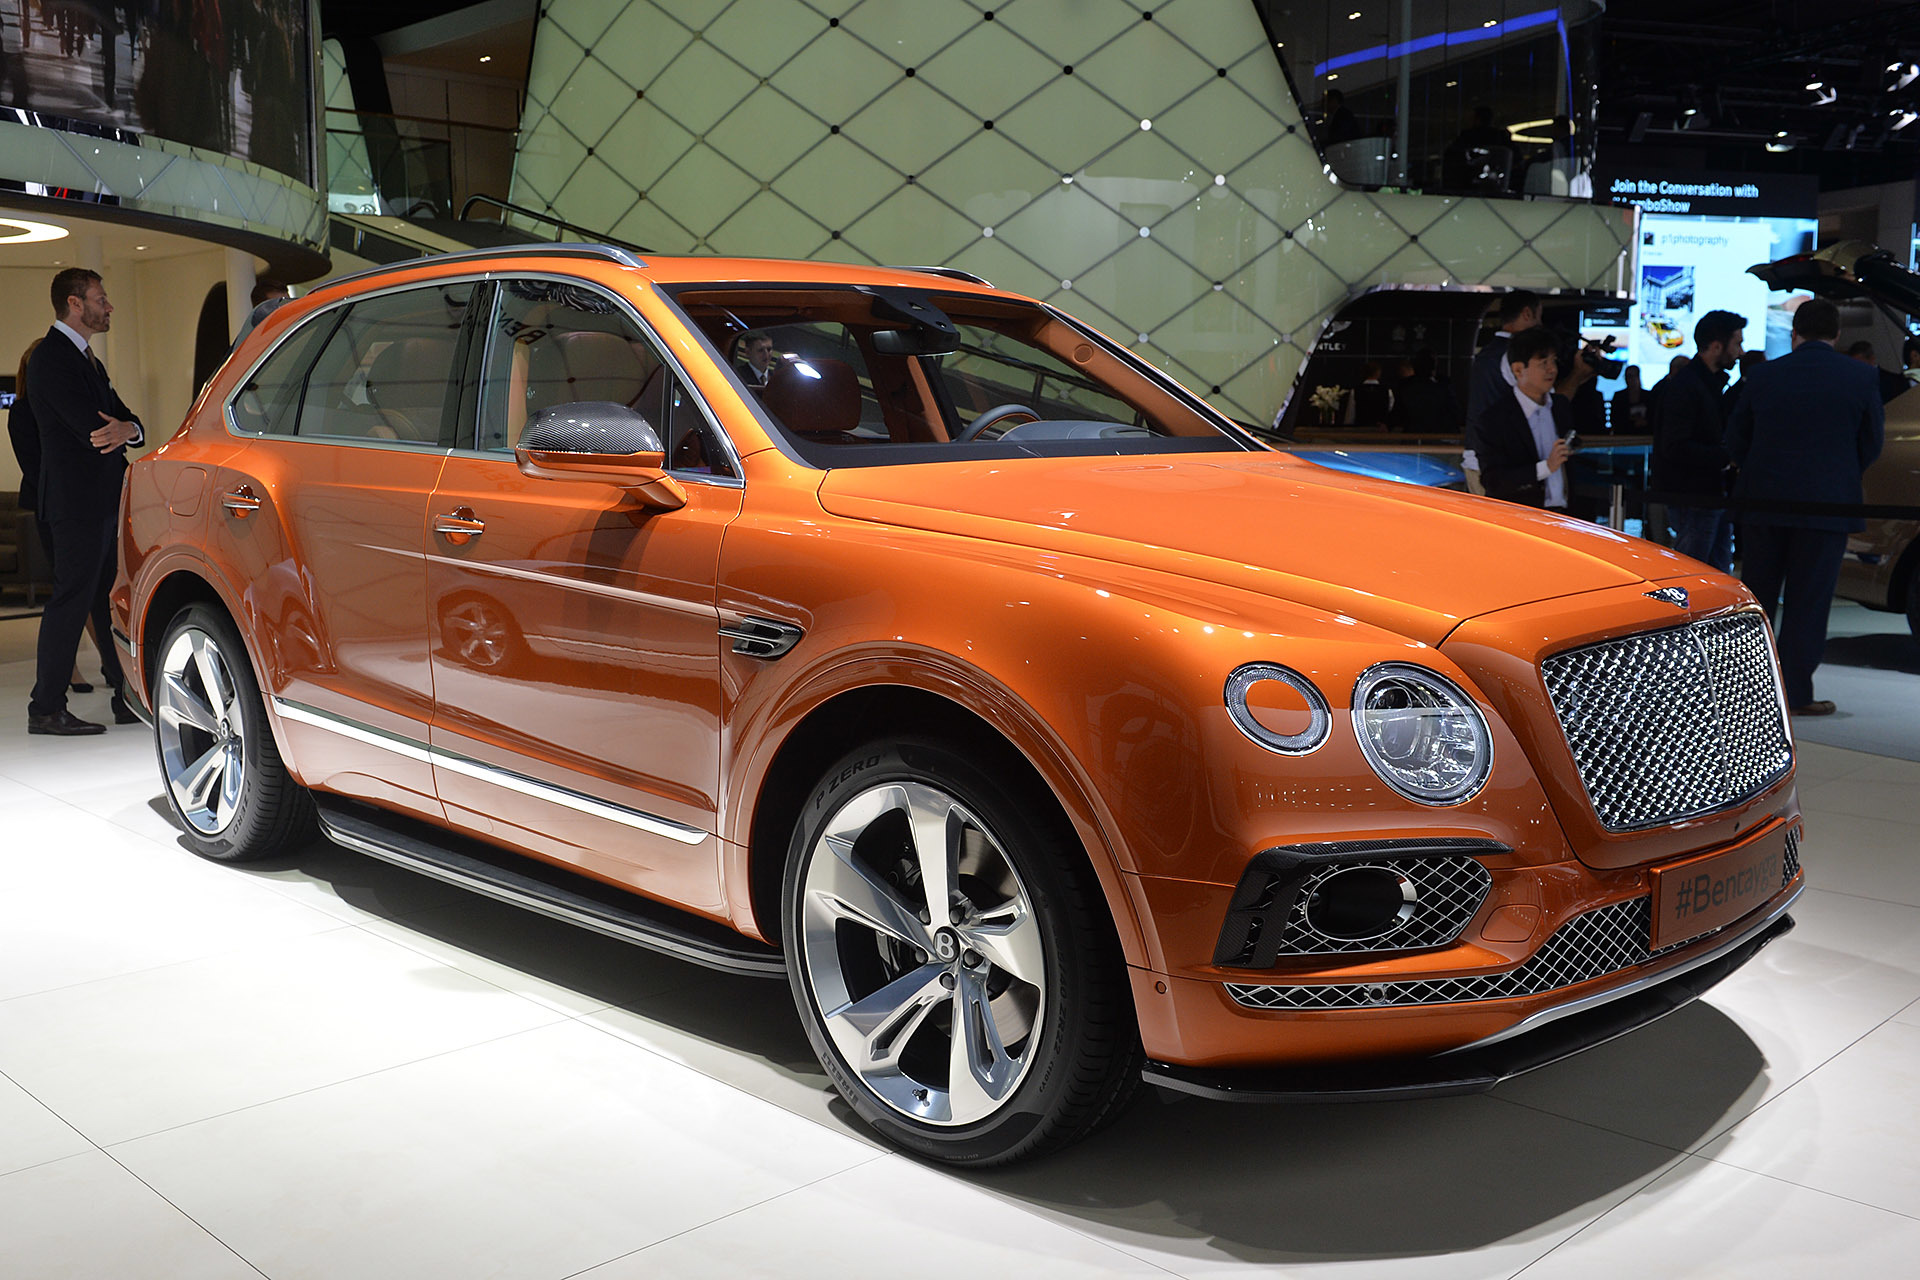 2016 Bentley Bentayga In The Buff [w/video]